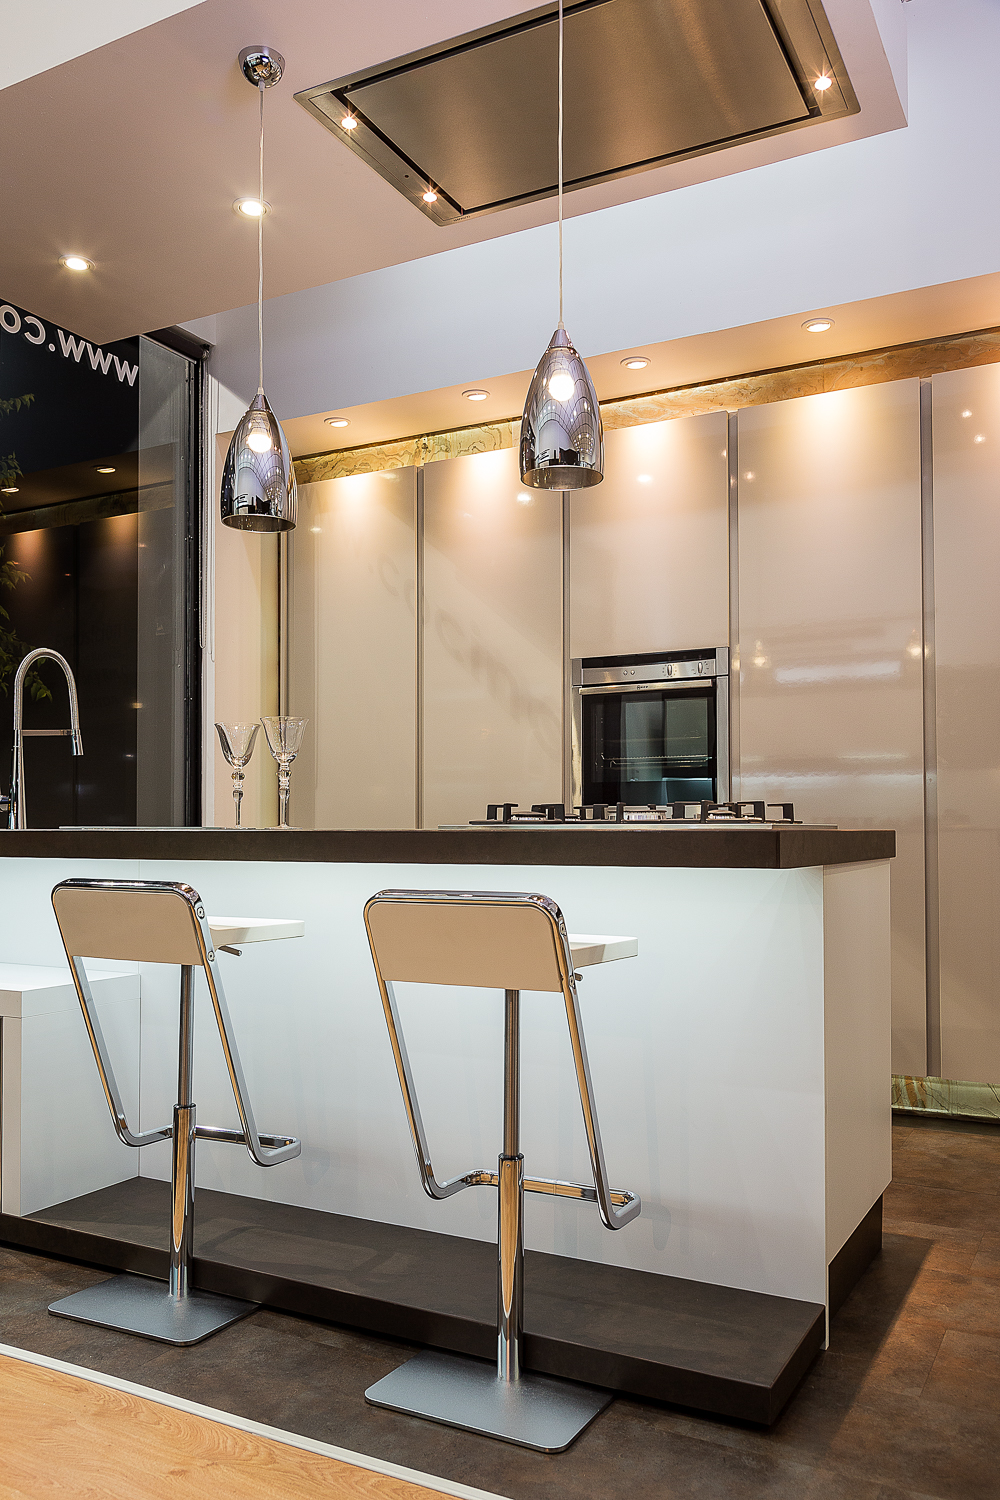 Showroom de artnova en sevilla for Cocinas disenos 2016